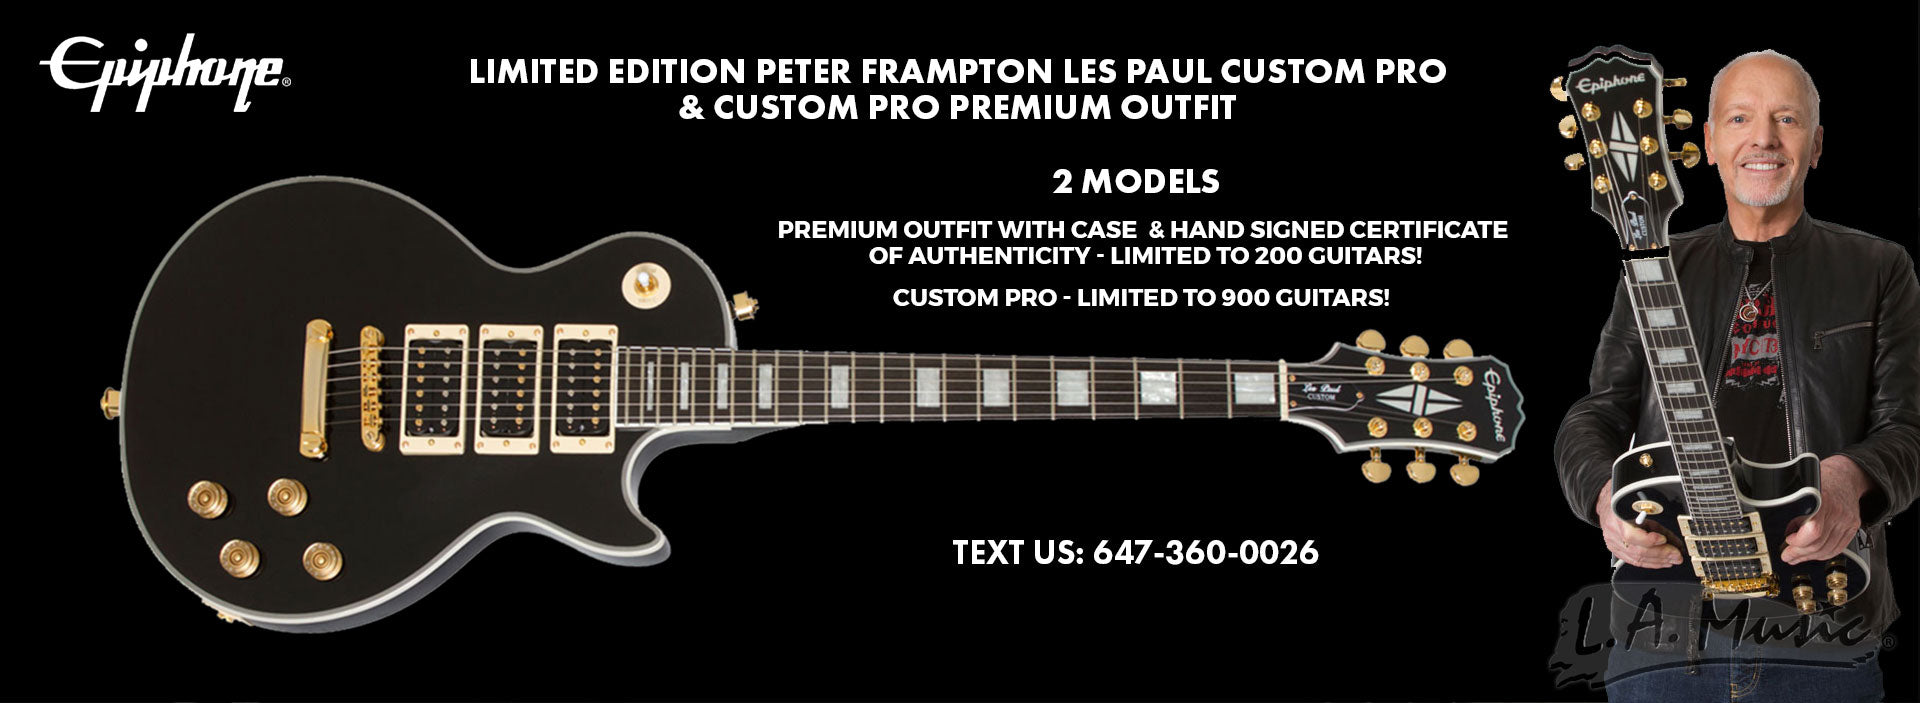 Epiphone Limited Edition Peter Frampton Custom PRO and Custom Pro Premium Outfit